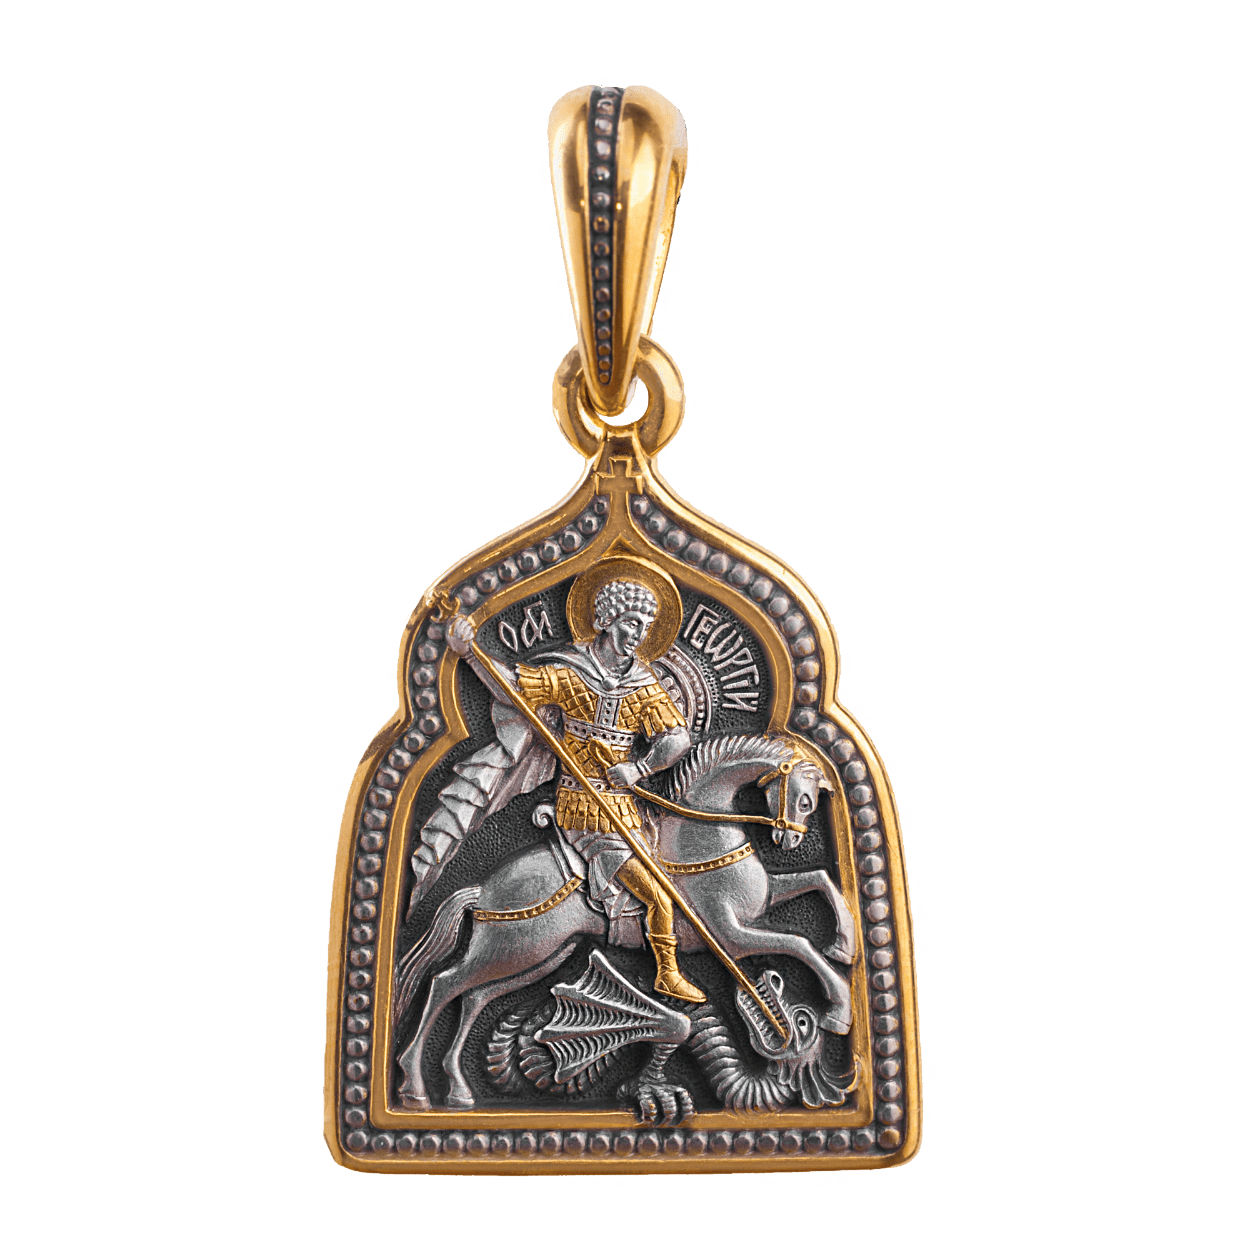 Russian Orthodox silver icon medal pendant SAINT GEORGE AND THE DRAGON Master Jeweler Fedorov